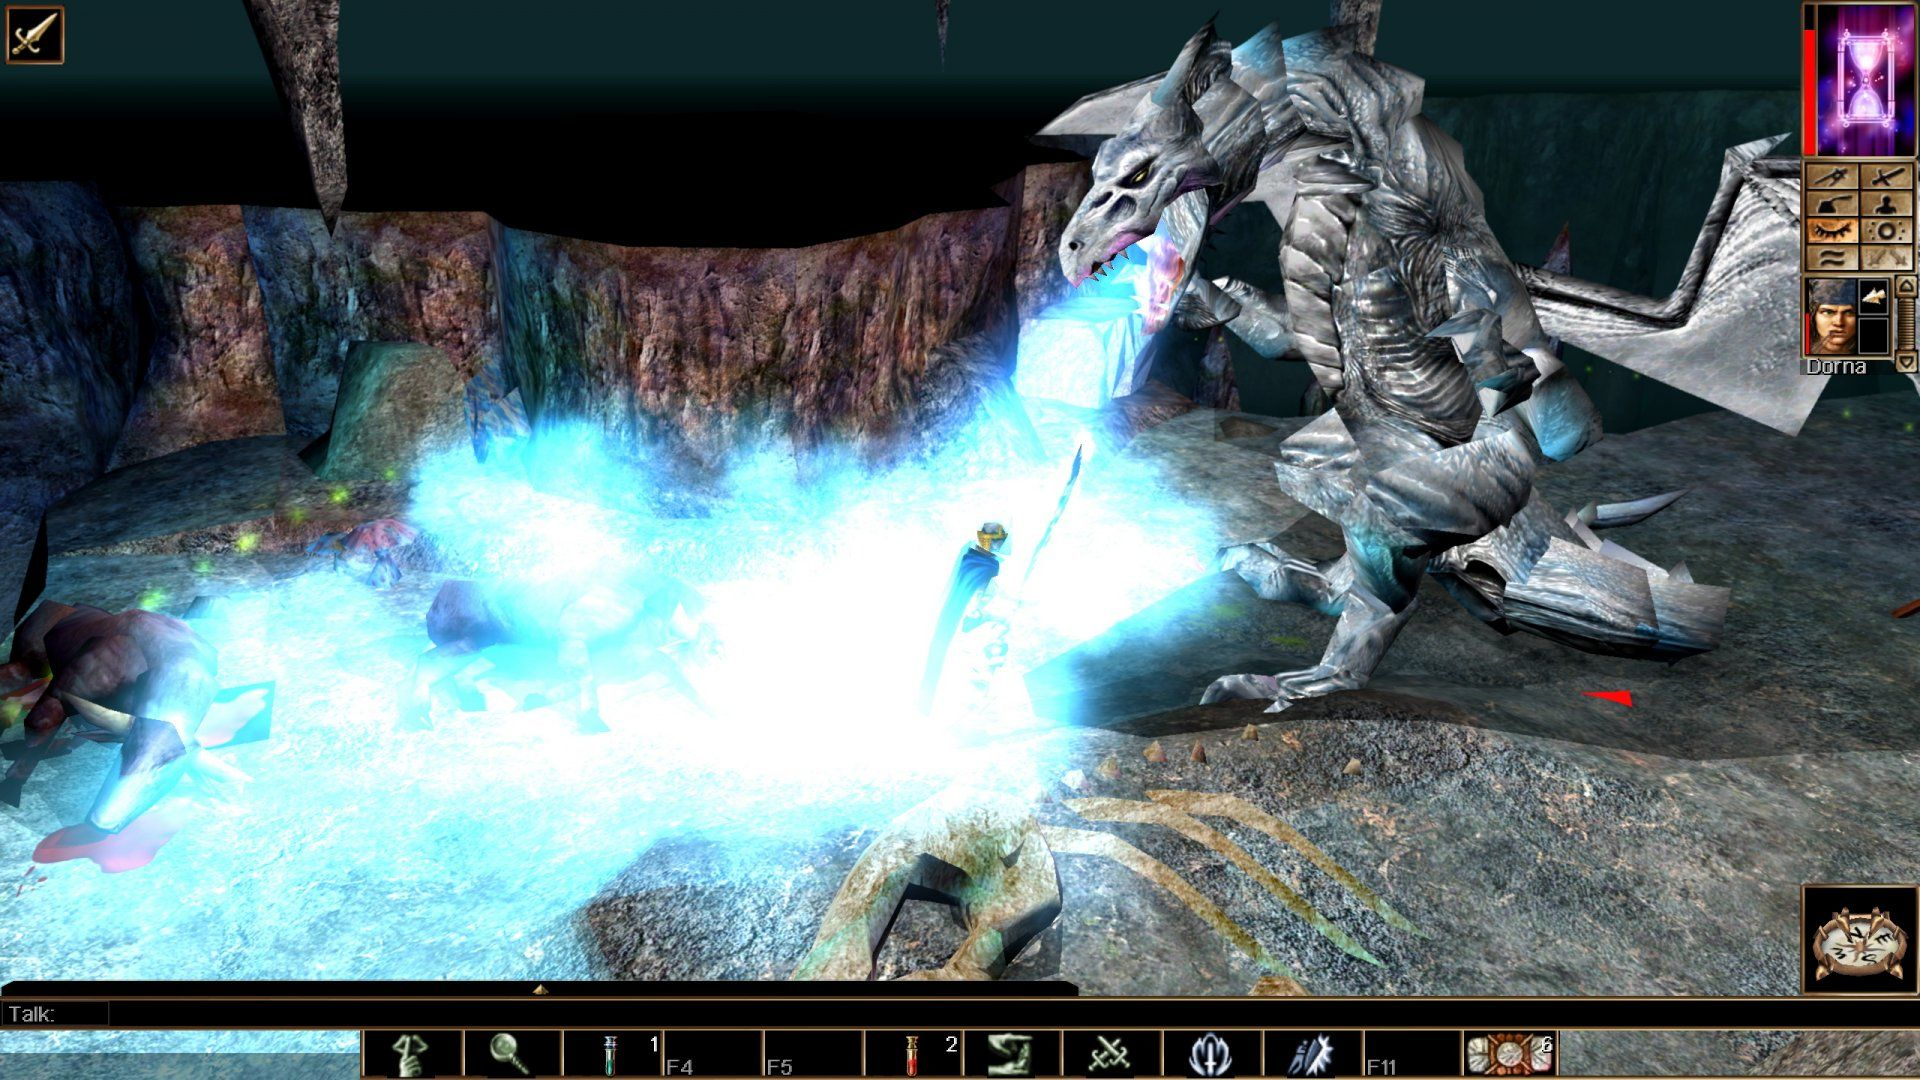 Cheapest Neverwinter Nights Key for PC Neverwinter